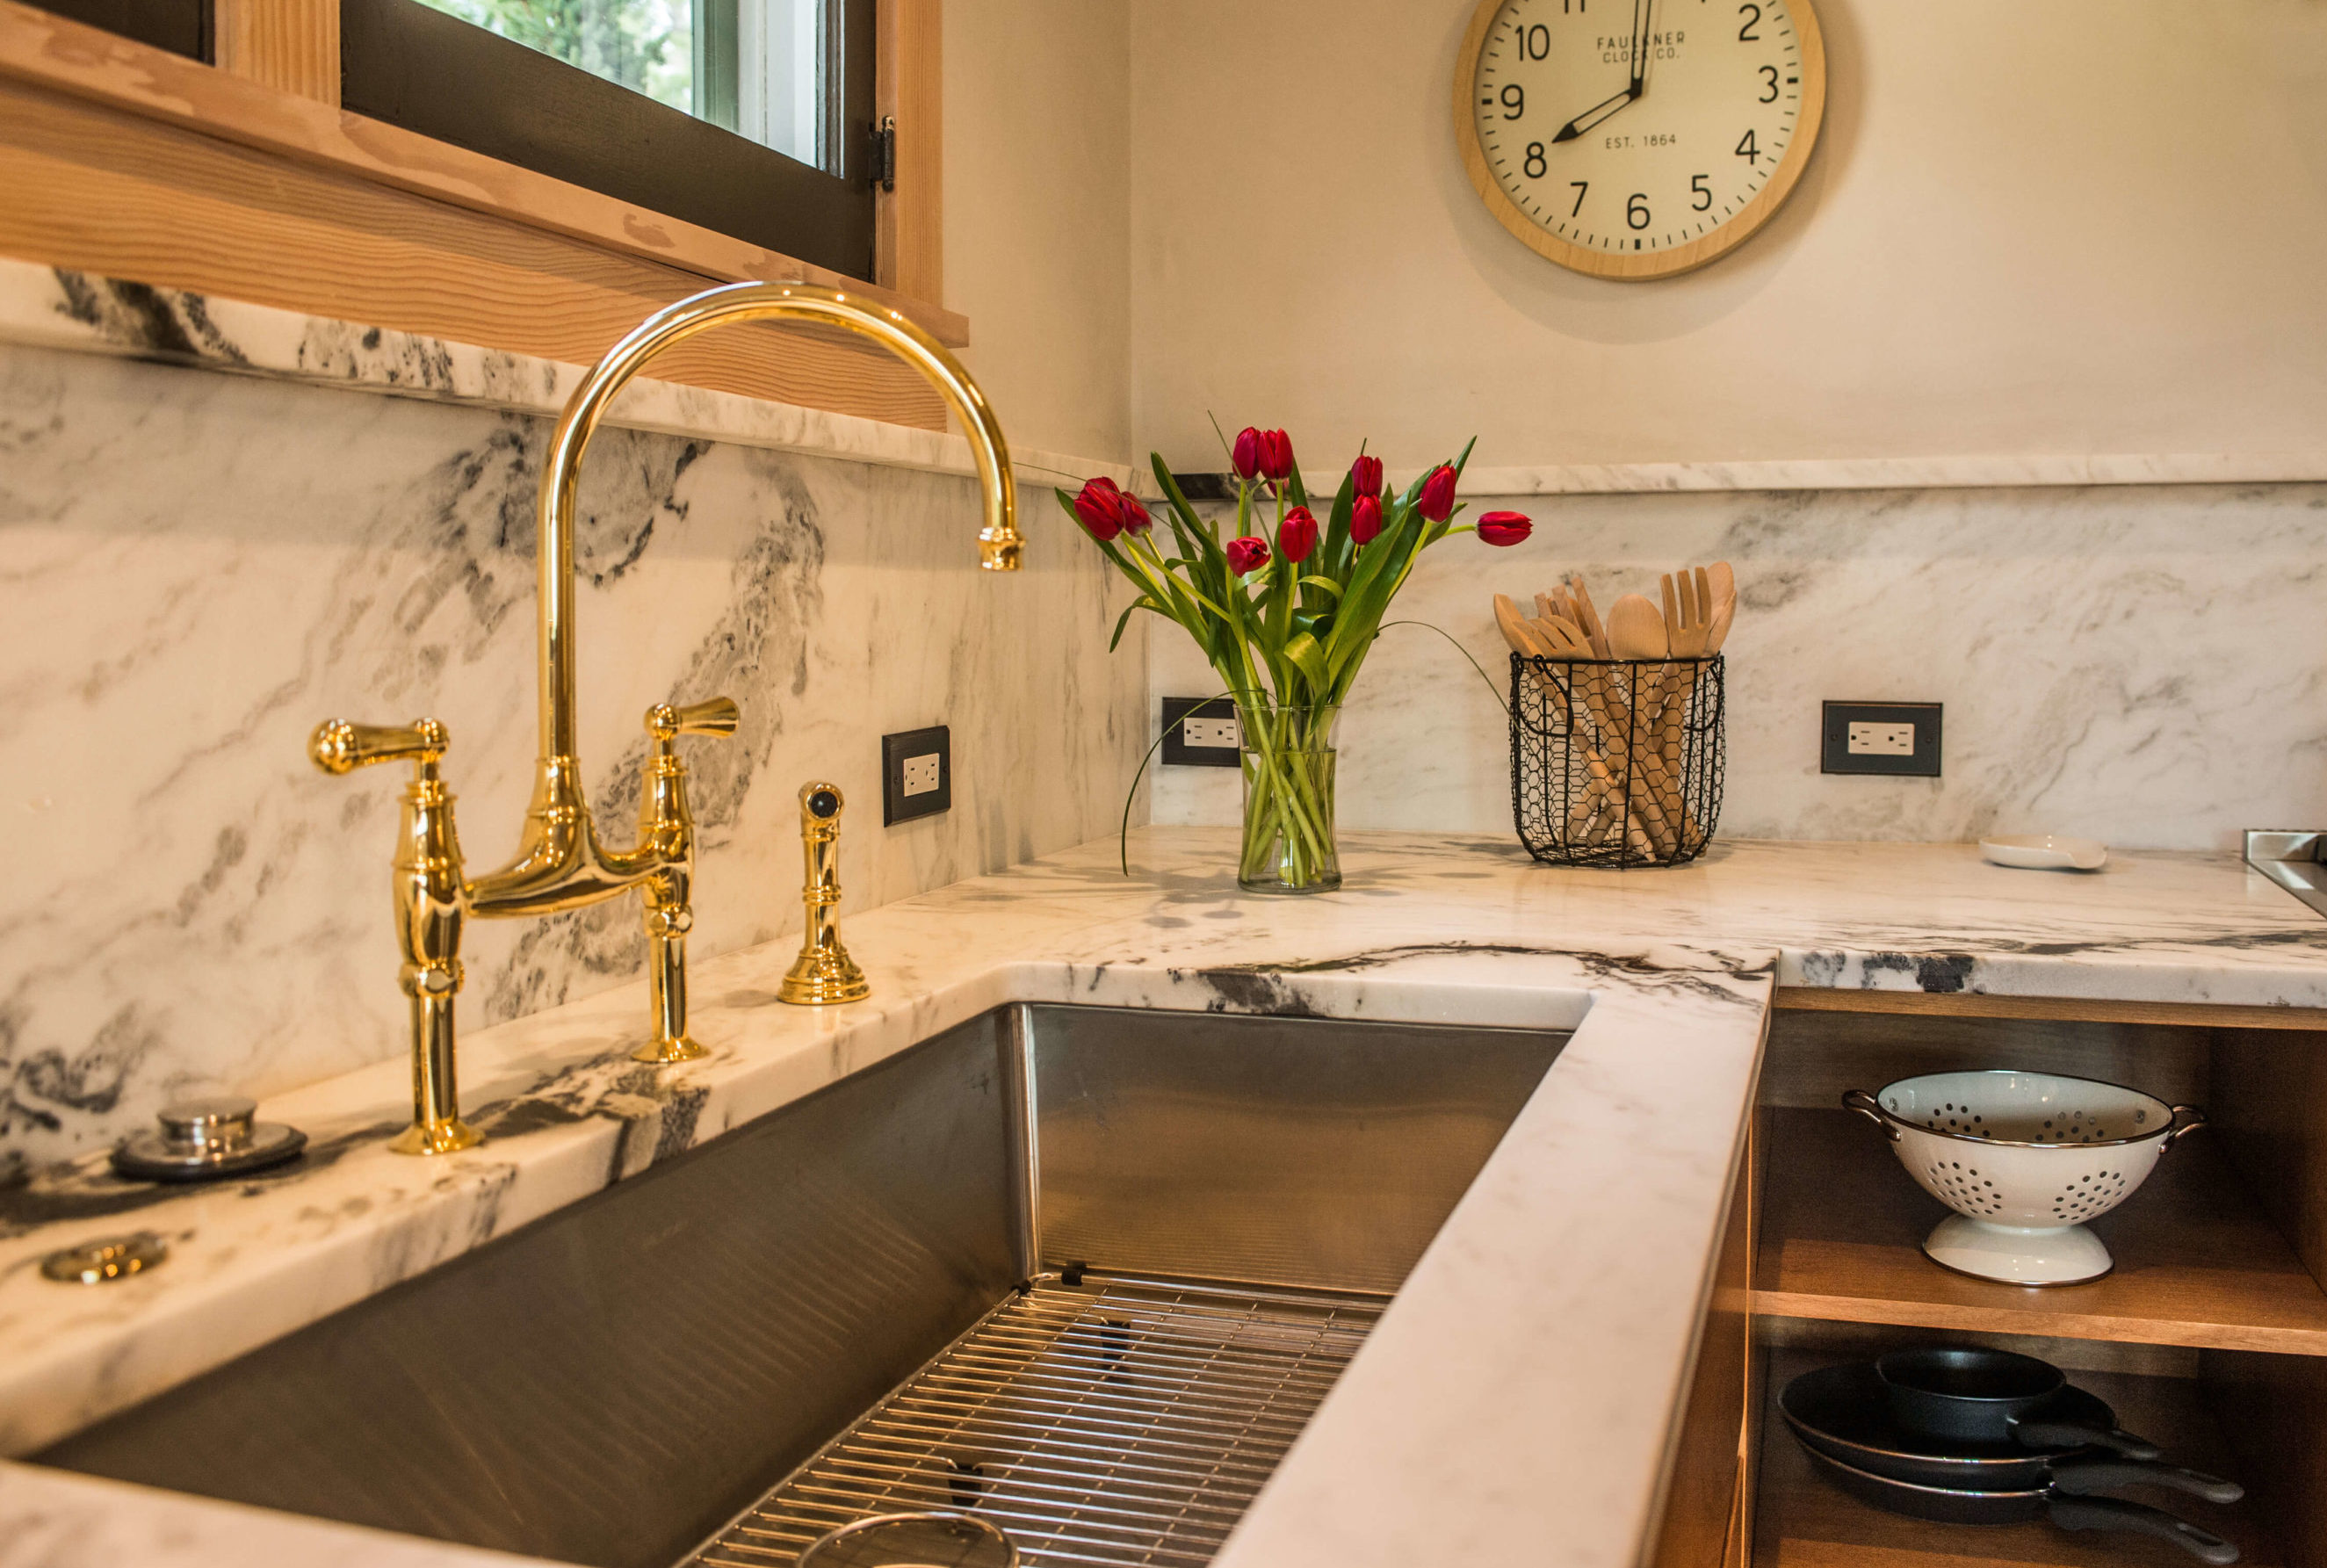 clock, tulips and gold faucet